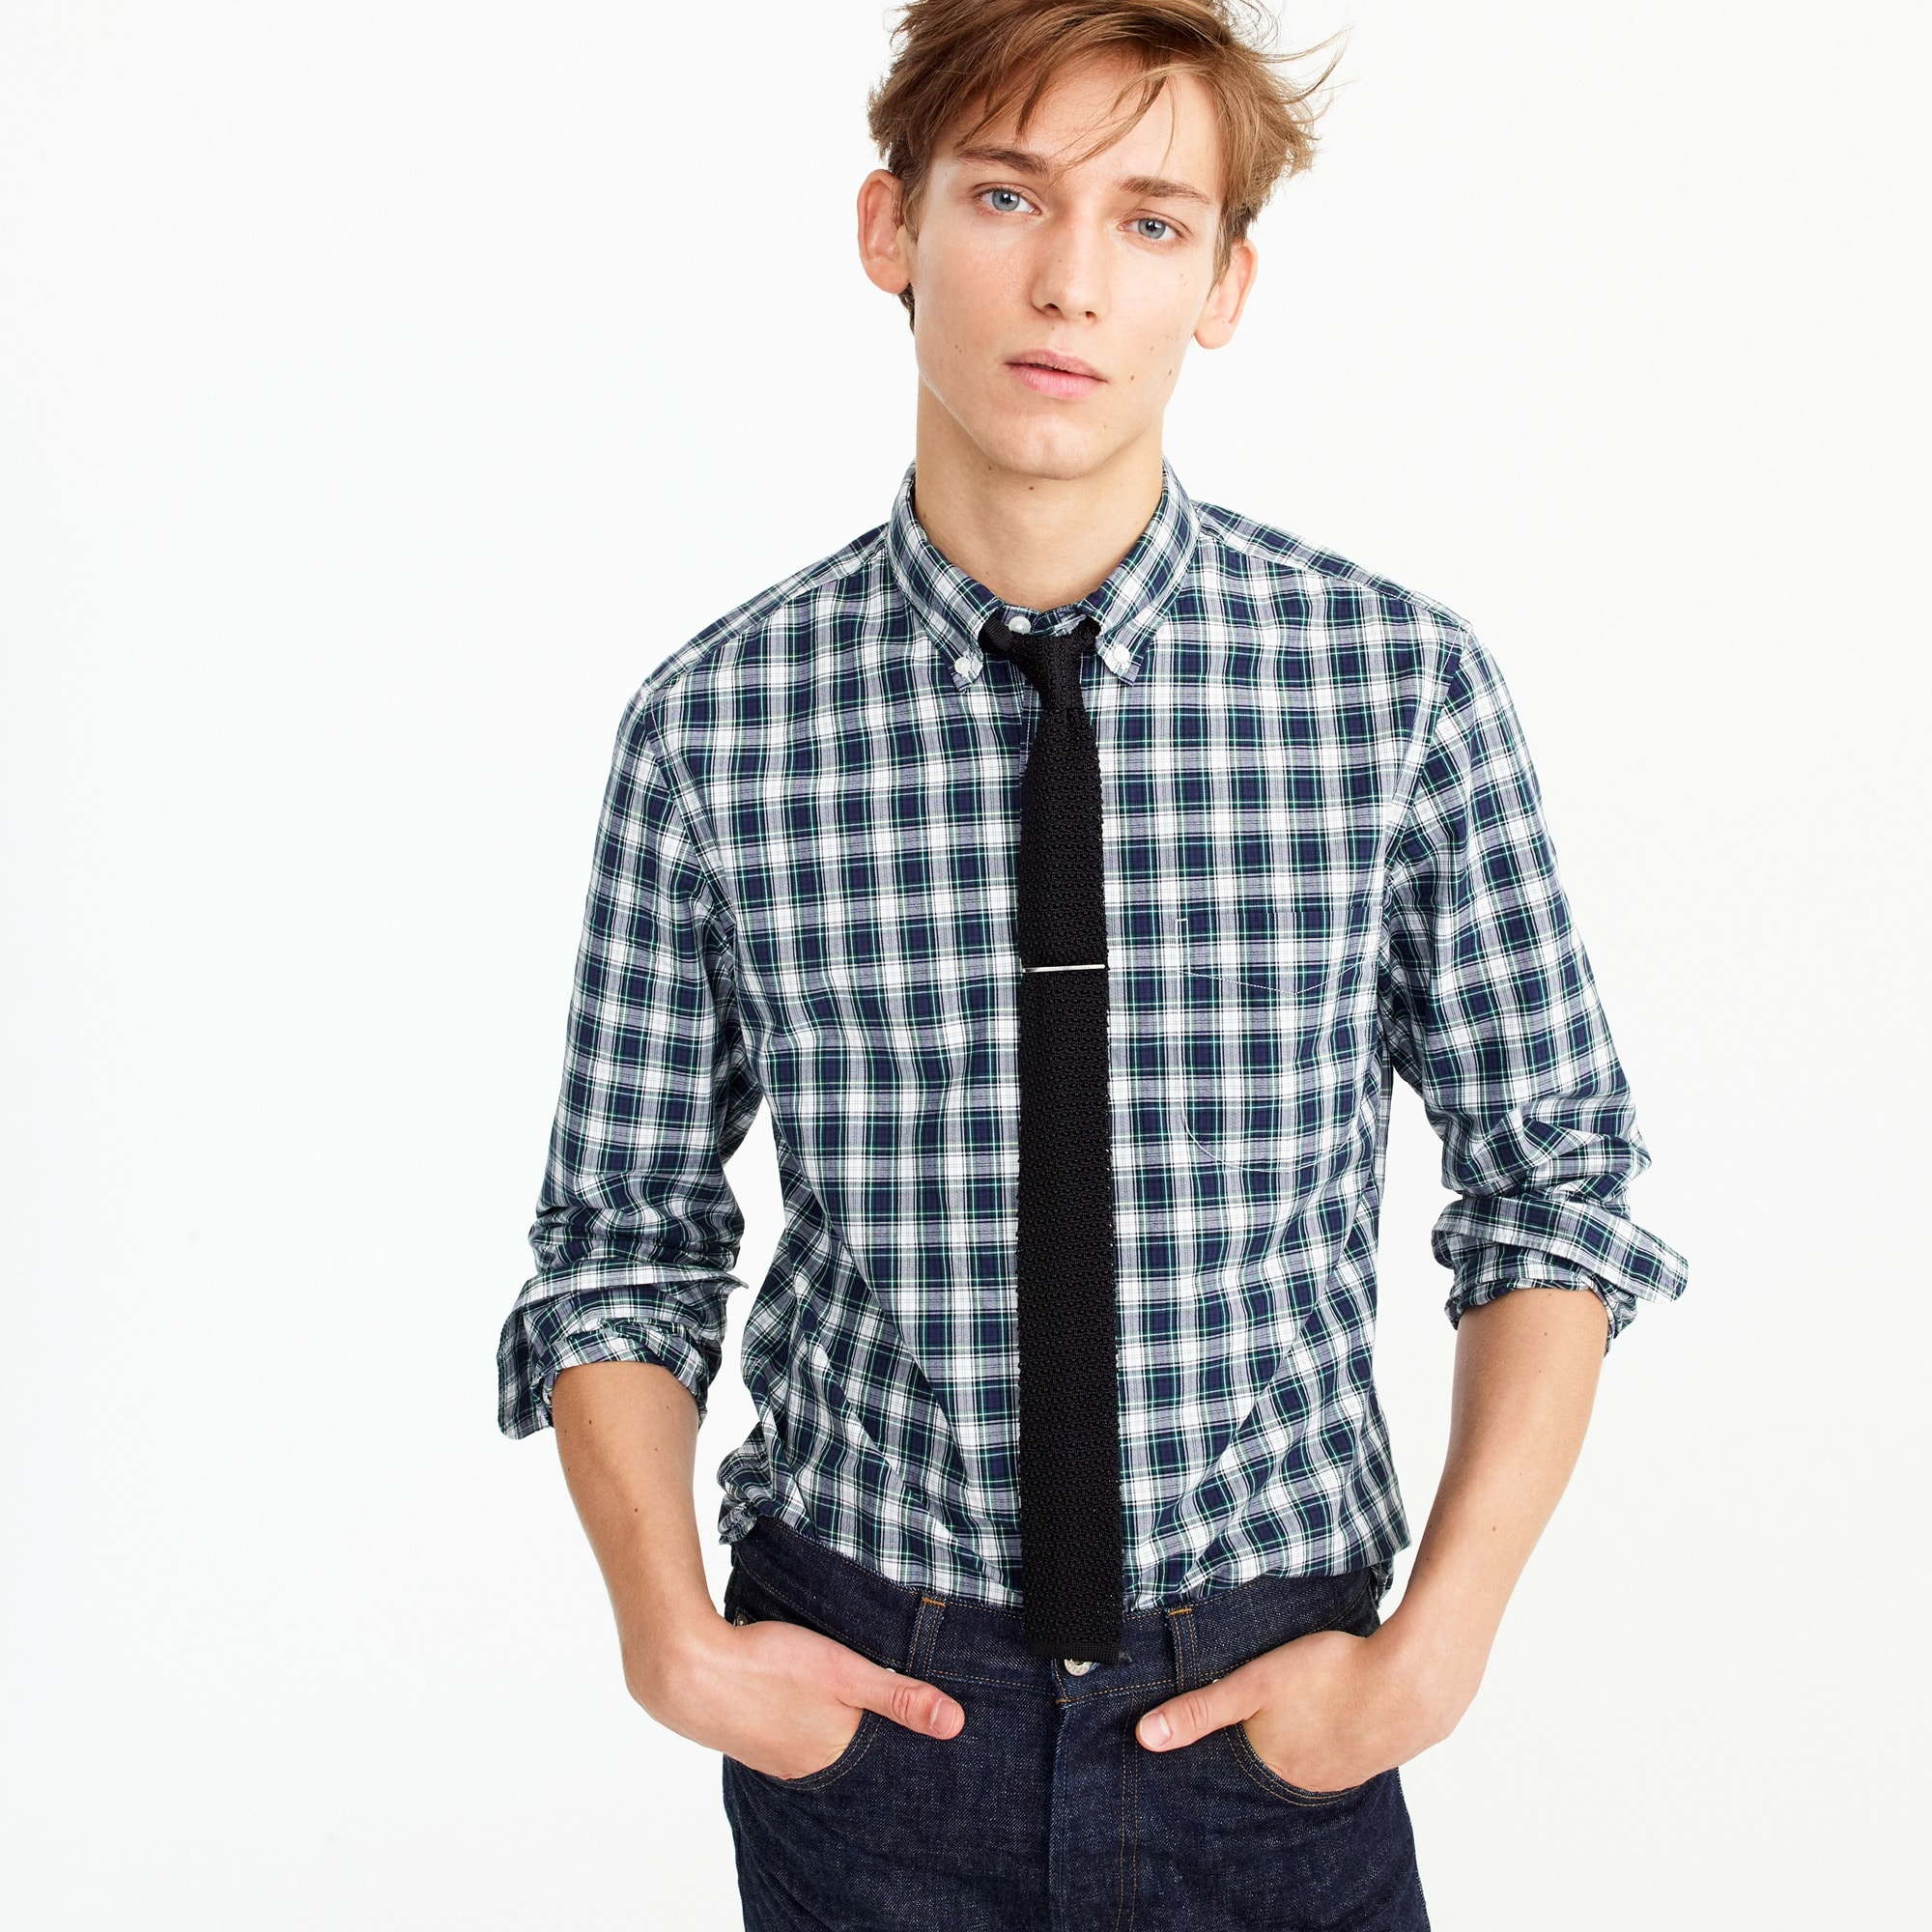 Image 1 for Slim Secret Wash shirt in navy plaid